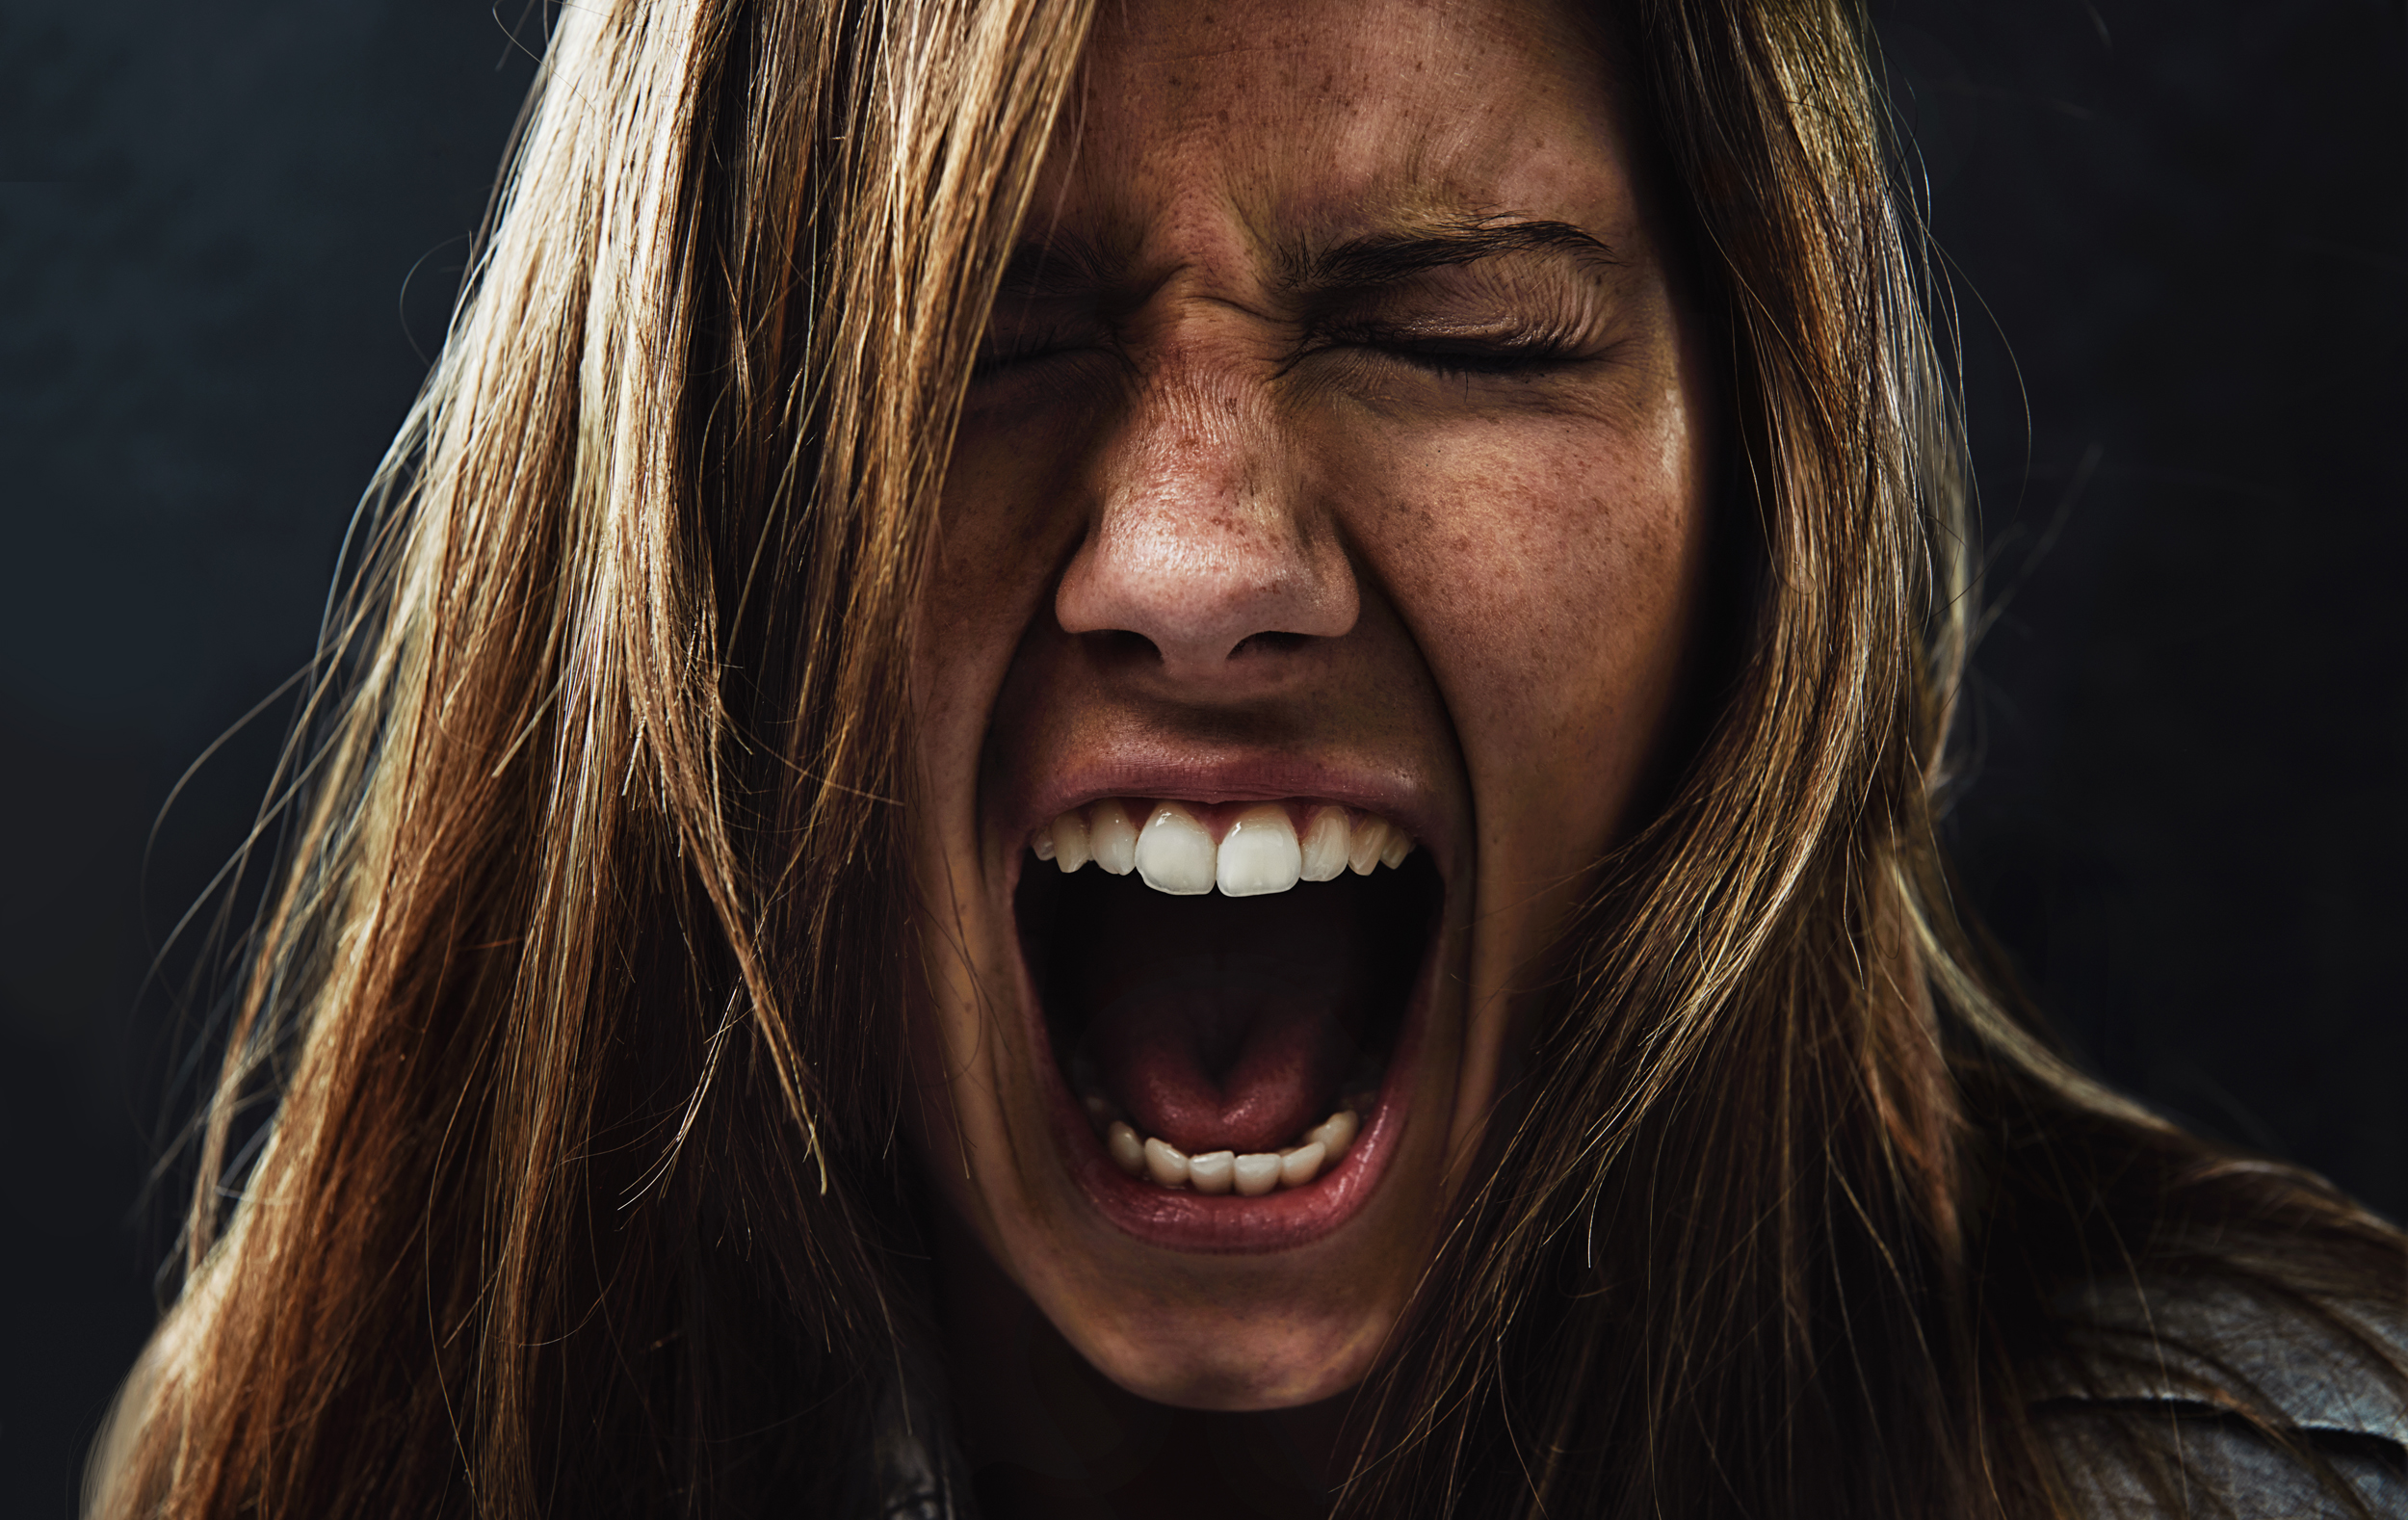 7 Easy Tricks: How Can I Stop Being So Angry?